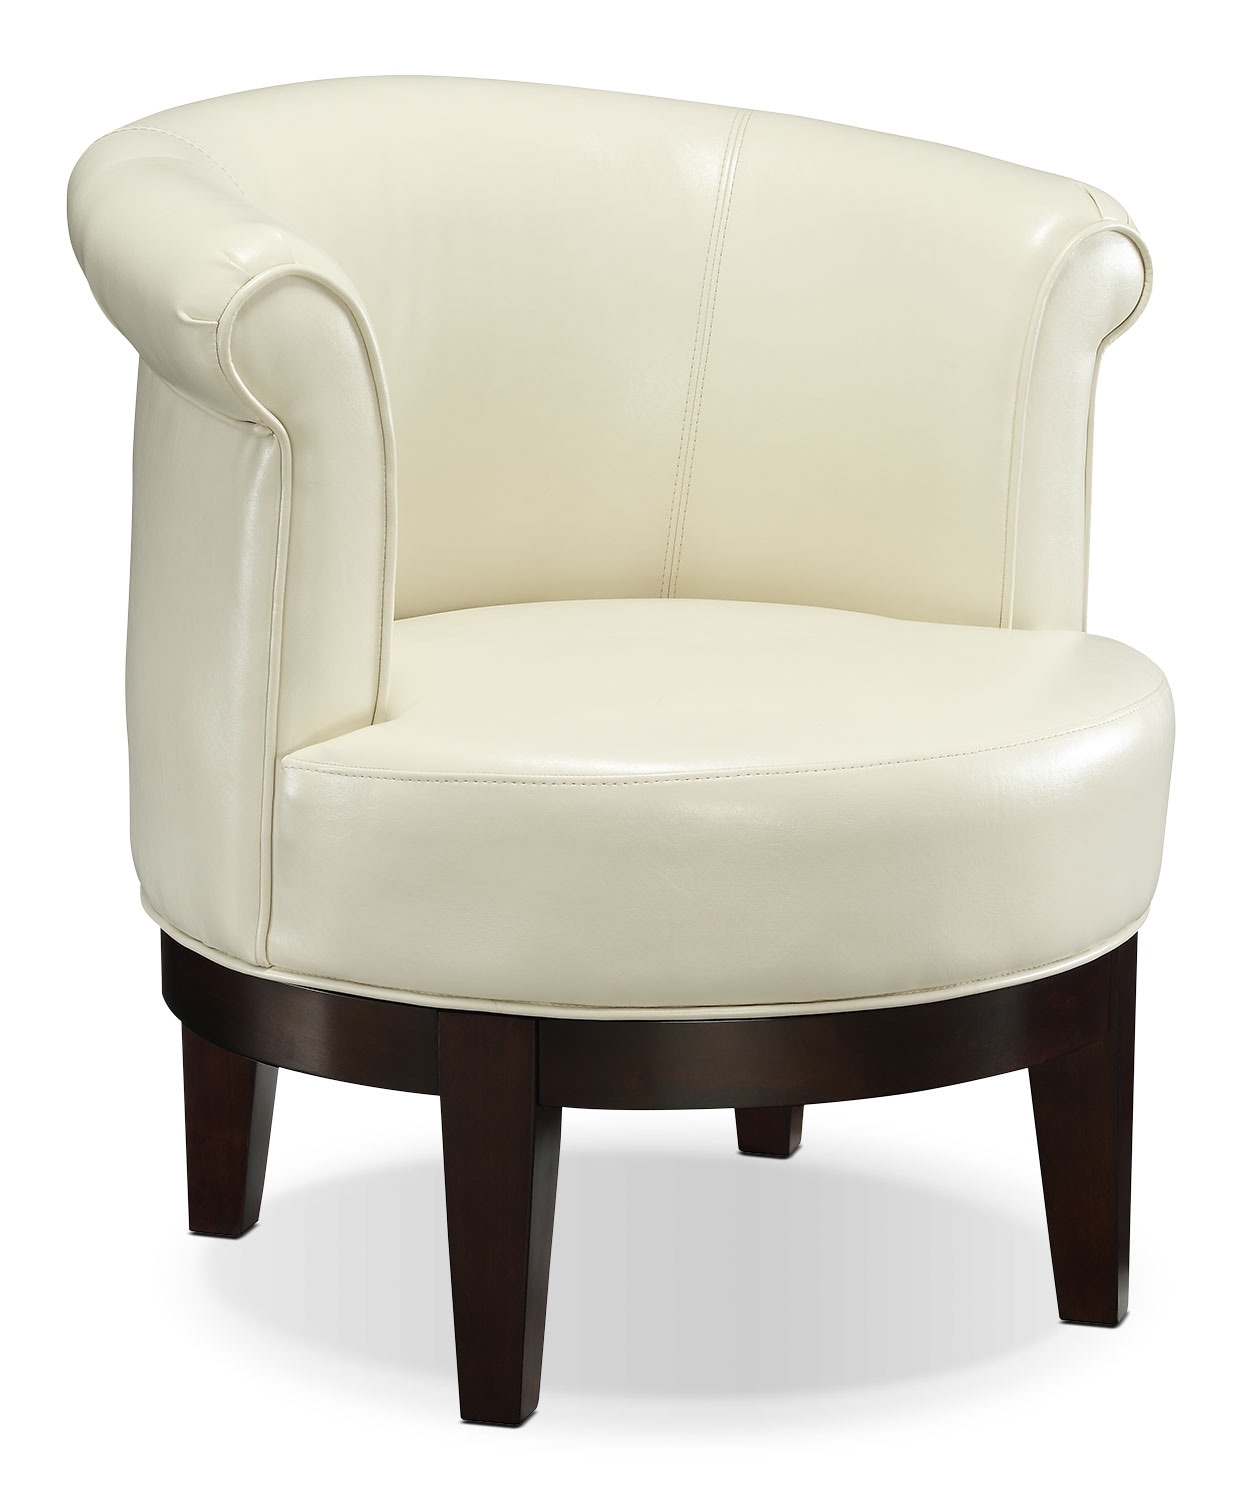 lino bonded leather swivel accent chair cream united furniture warehouse. Black Bedroom Furniture Sets. Home Design Ideas